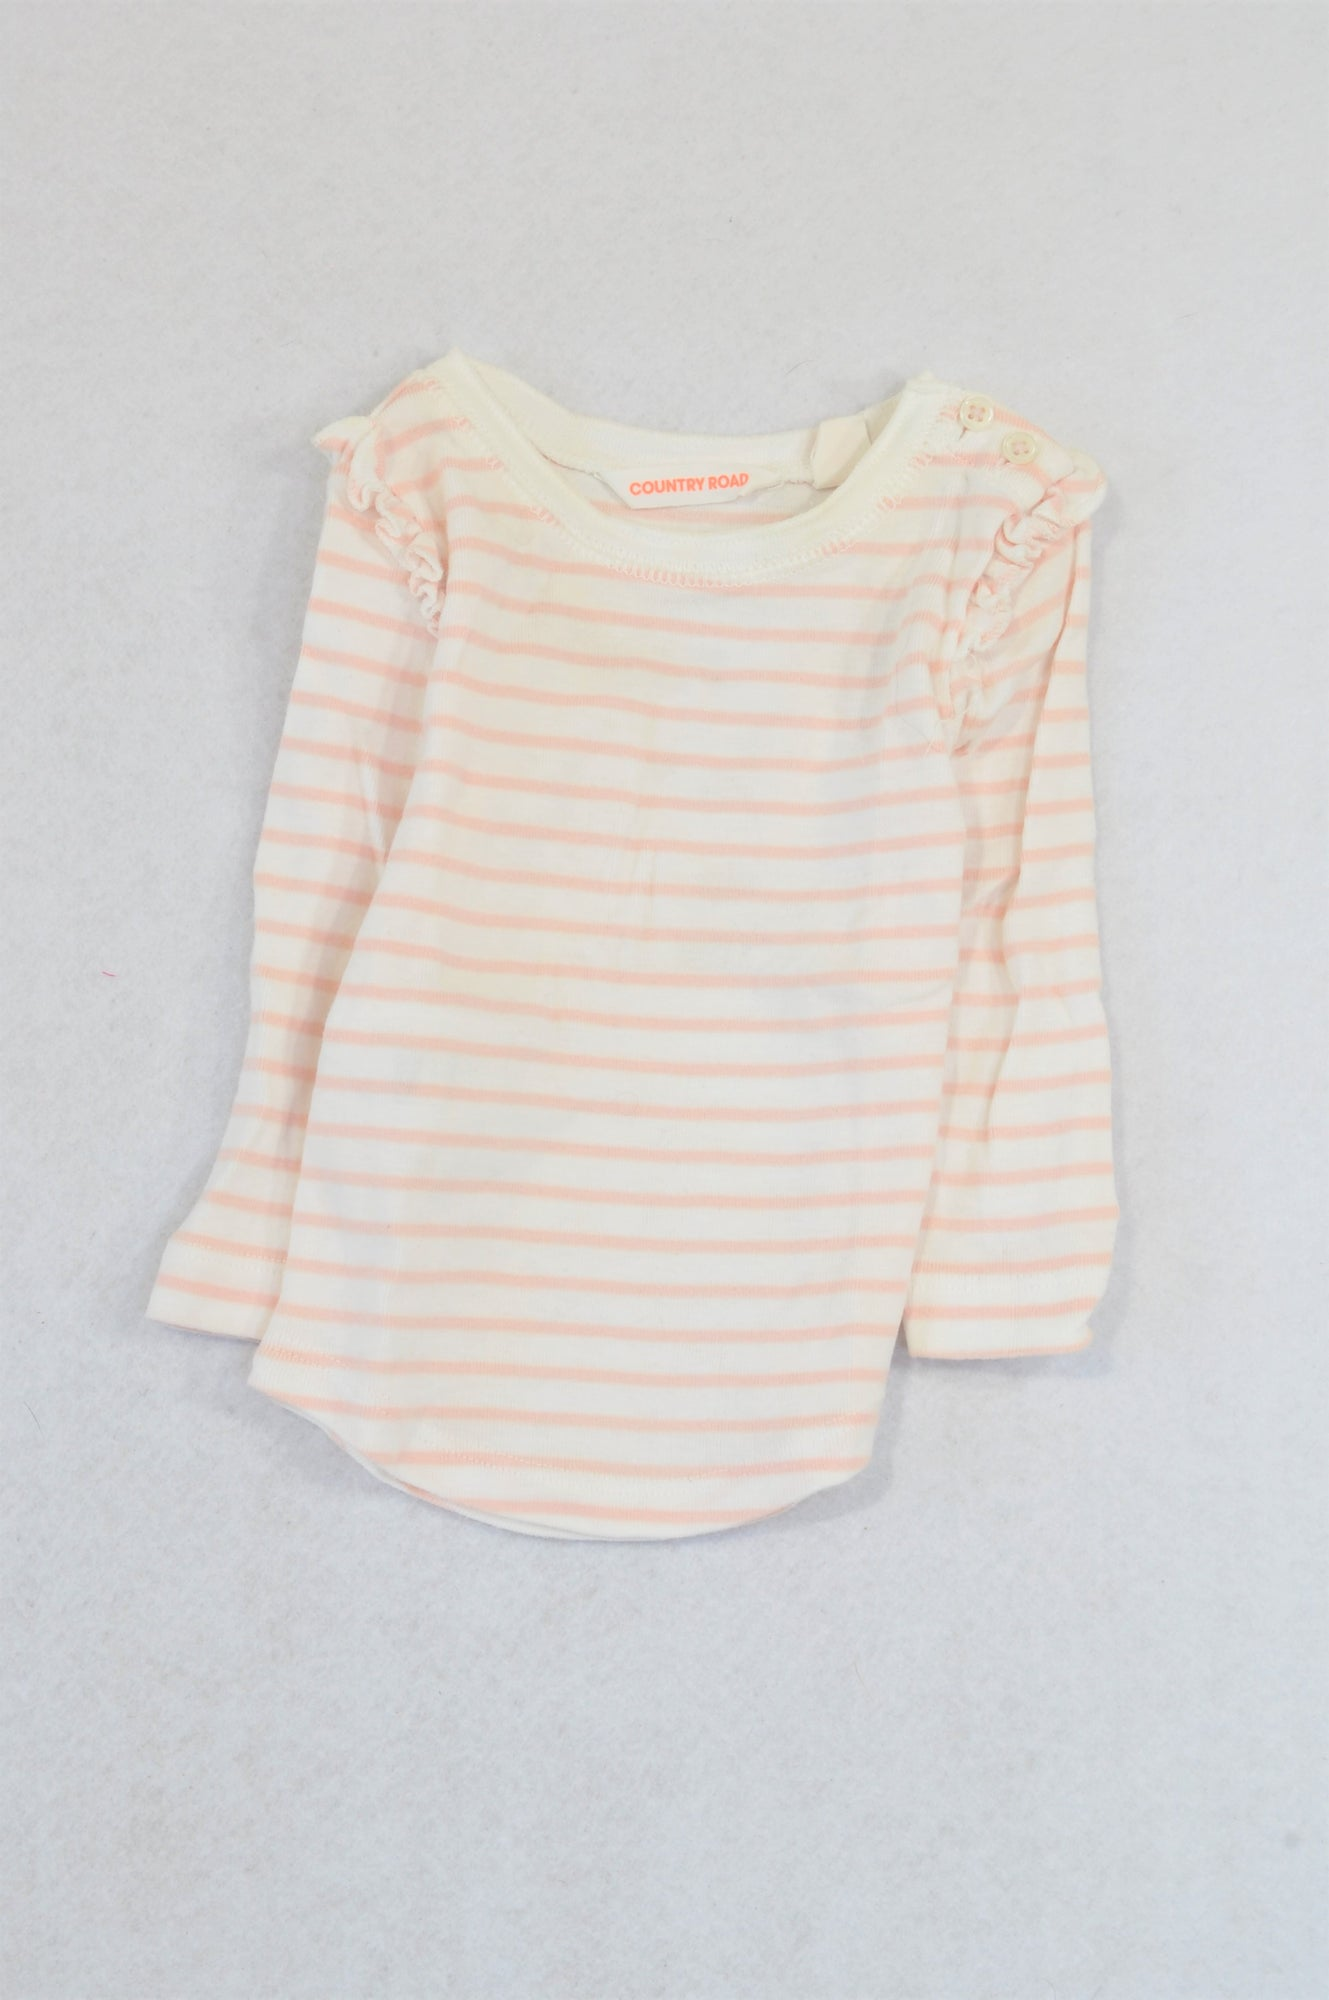 Country Road Pink & Ivory Ruffle Sleeve T-shirt Girls 0-3 months